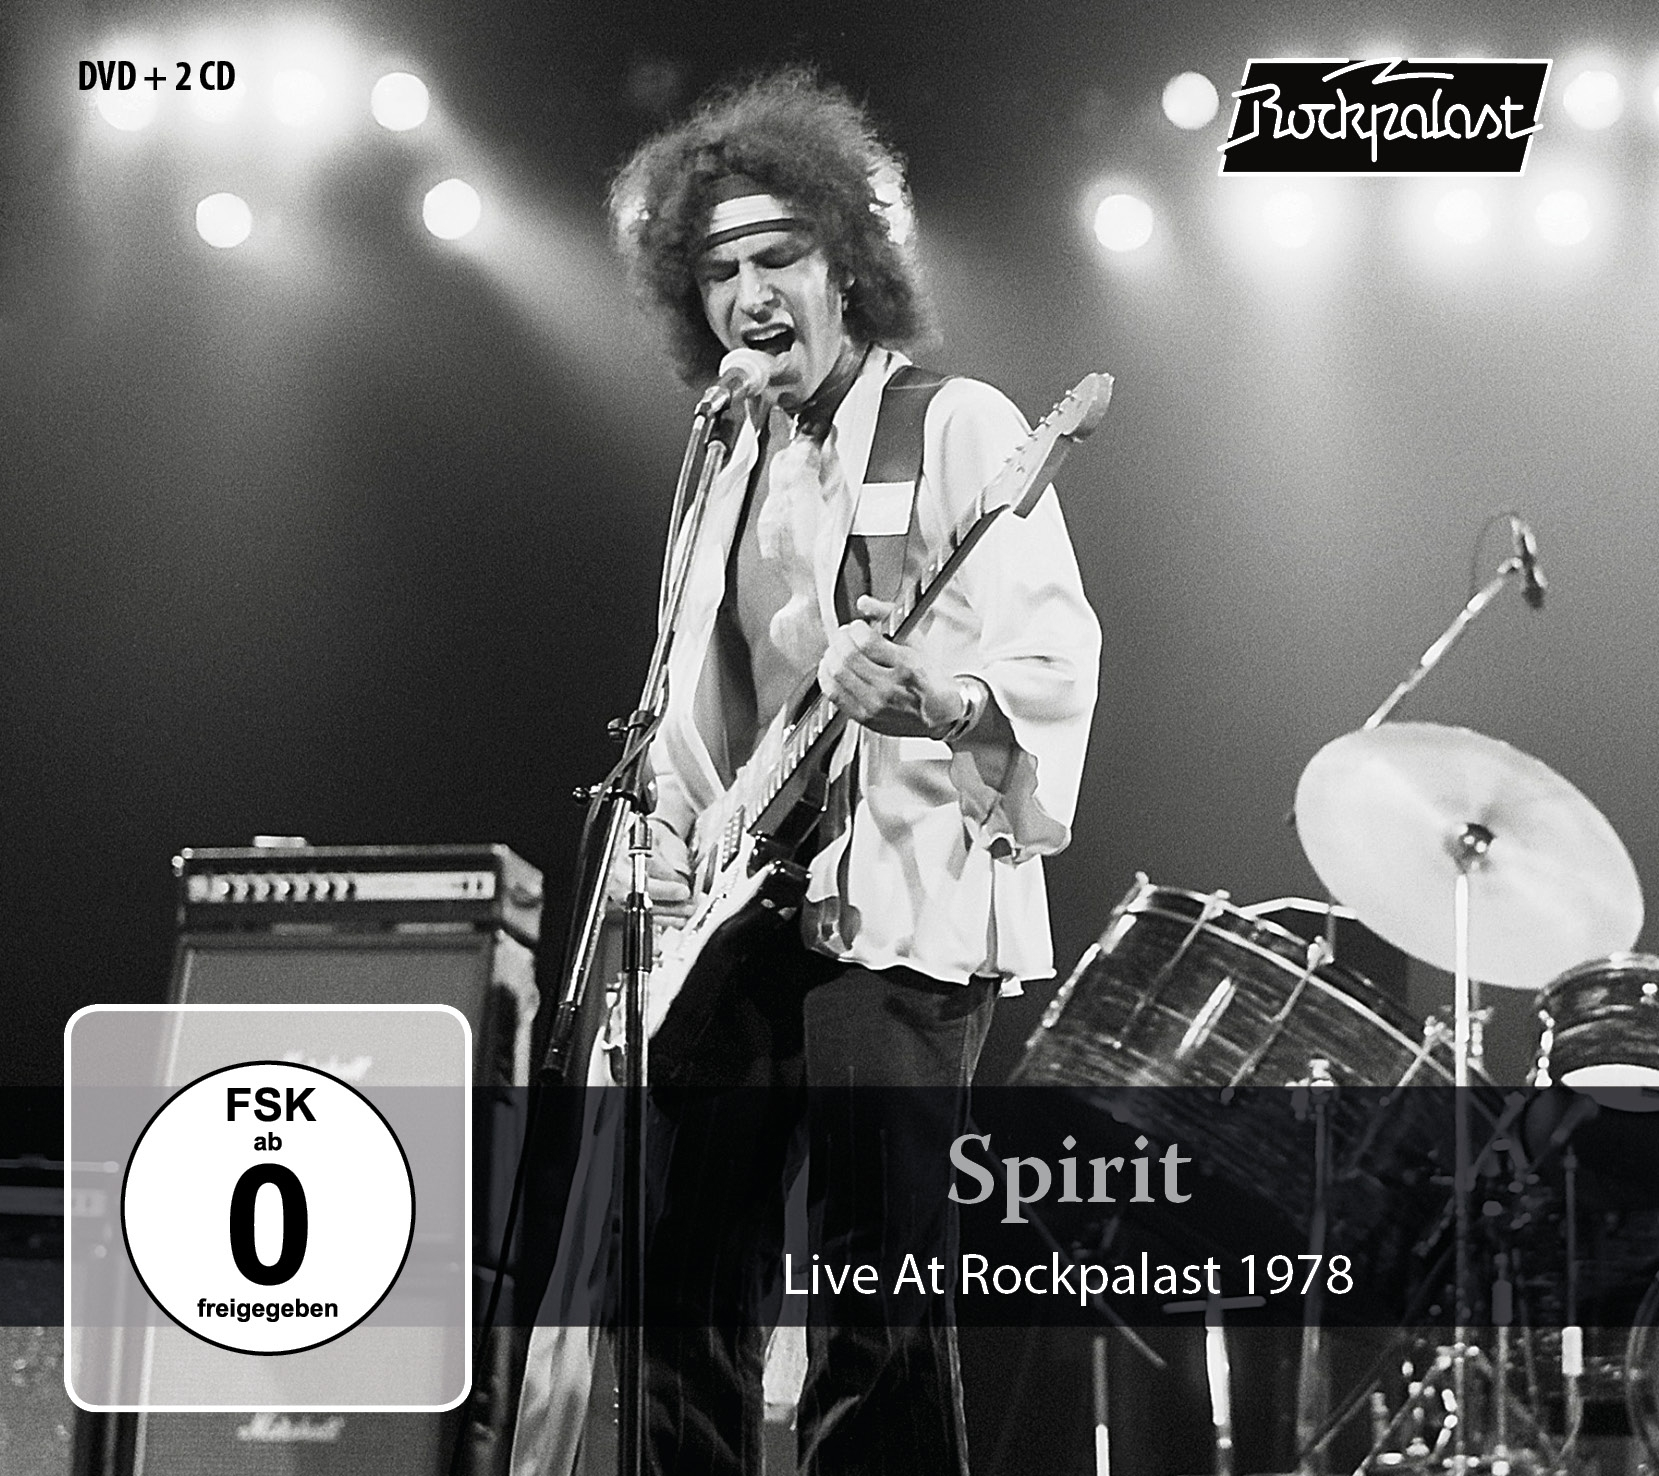 Live At Rockpalast 1978 (2CD + DVD)